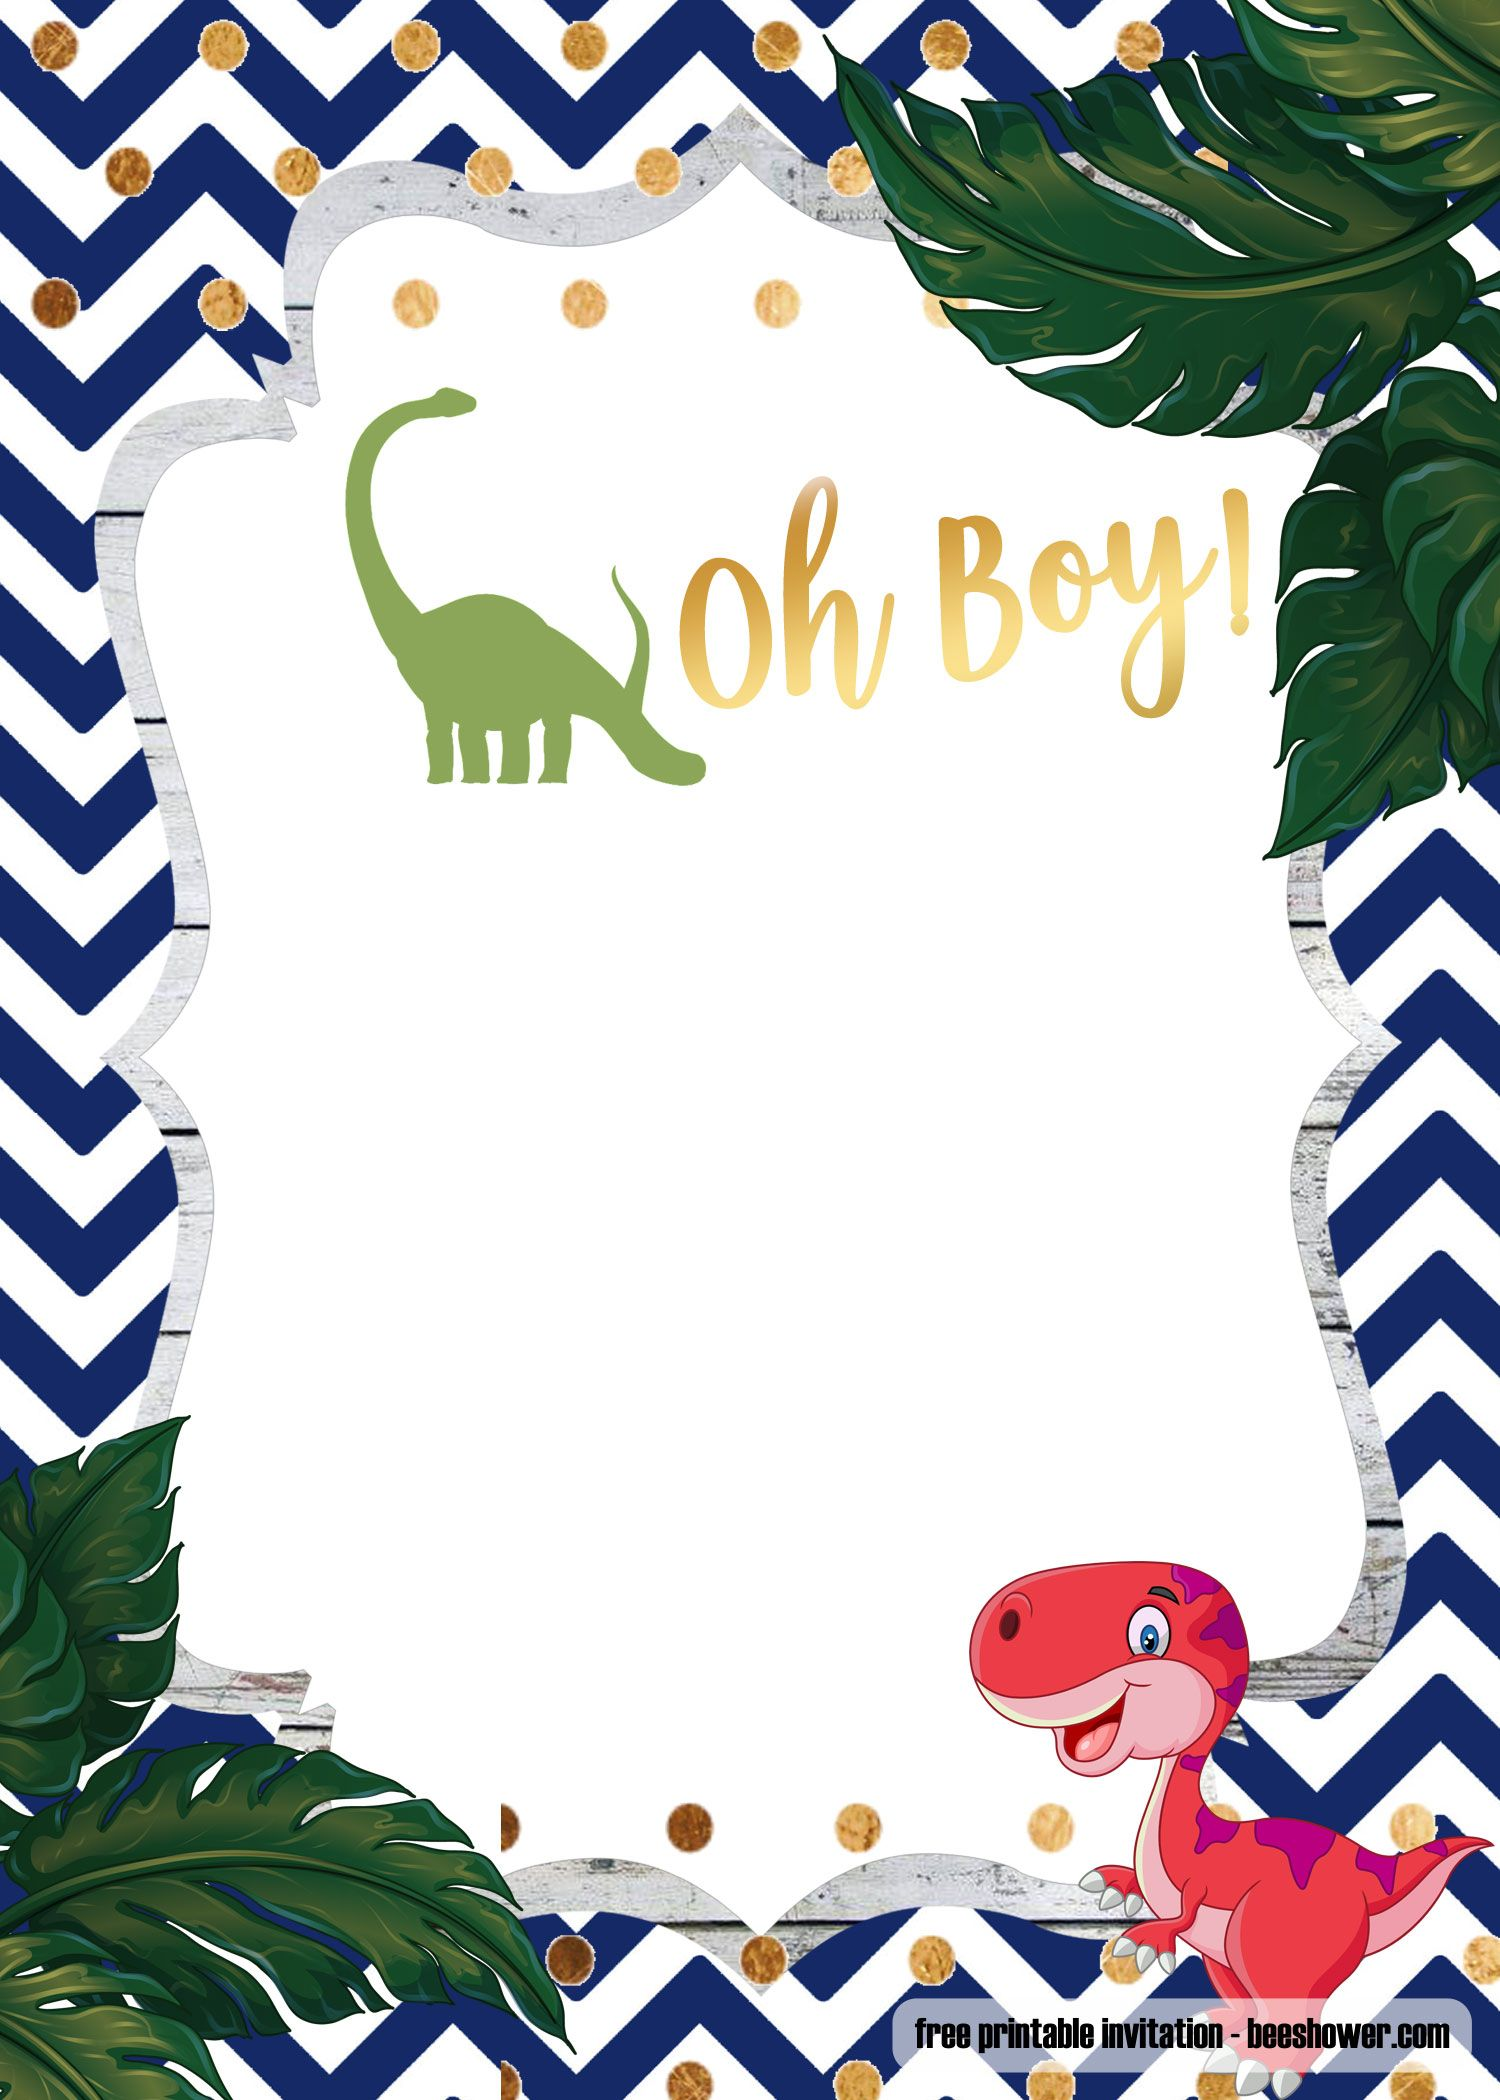 A Dinosaur Template For Your Baby Shower